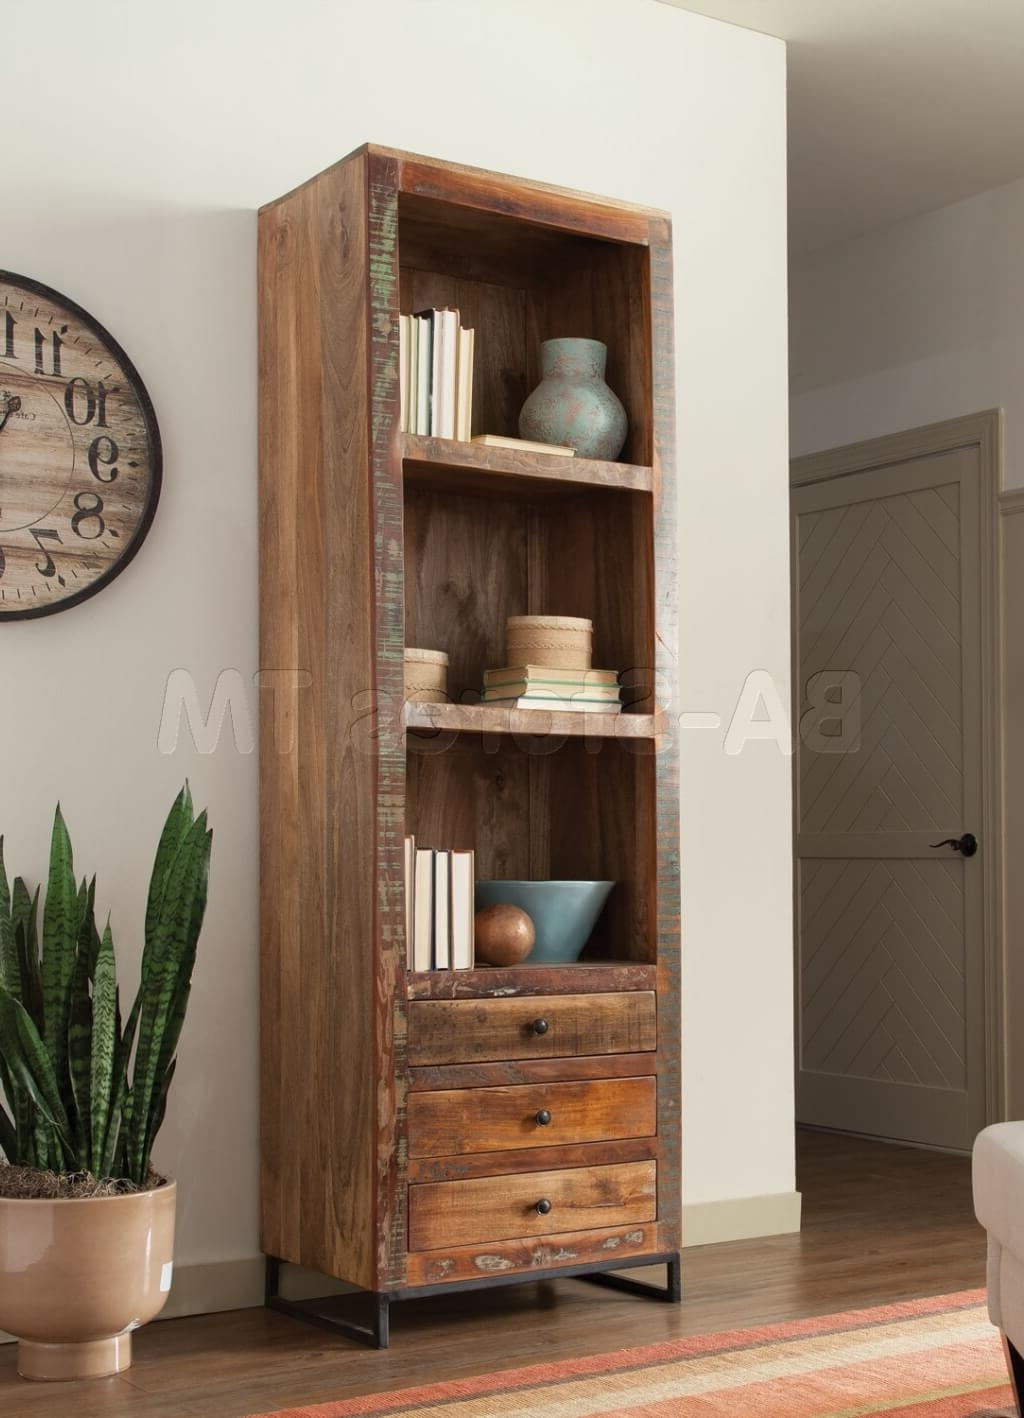 Preferred Furniture: Tall Distressed Wooden Bookcase And Distressed Bookcase In Distressed Bookcases (View 3 of 15)